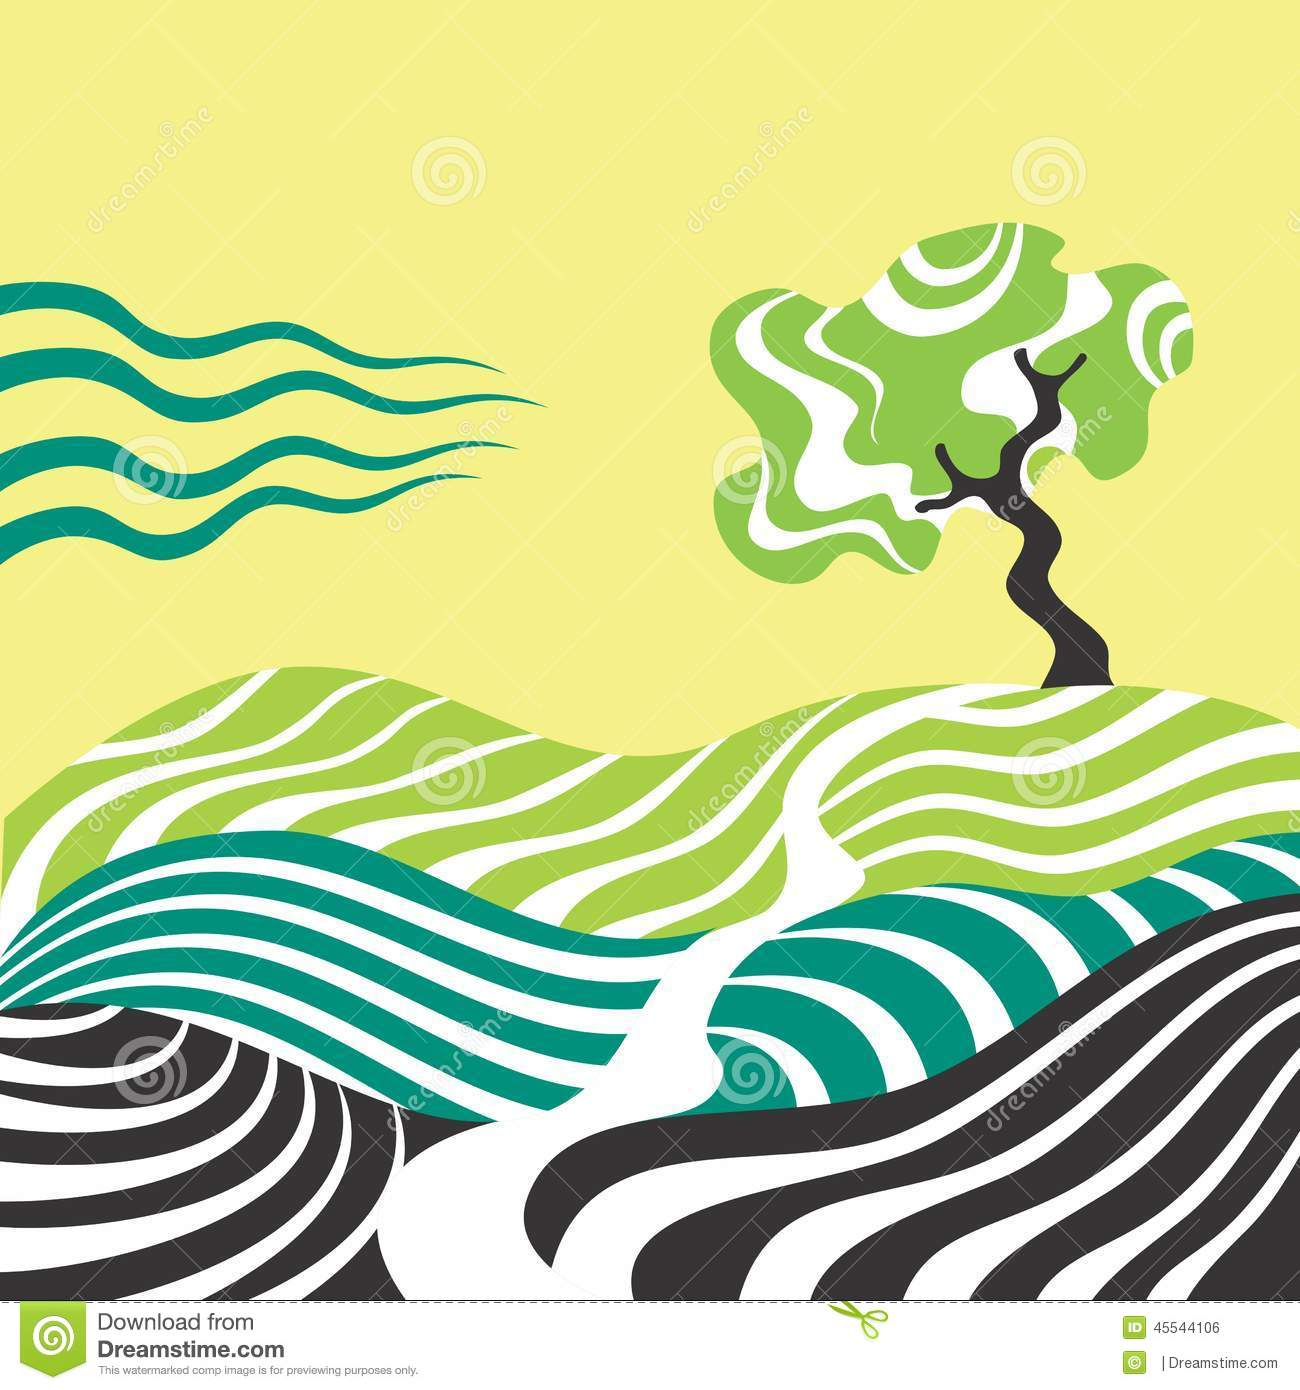 Drawing Lines With Core Graphics : Tree stock illustration image